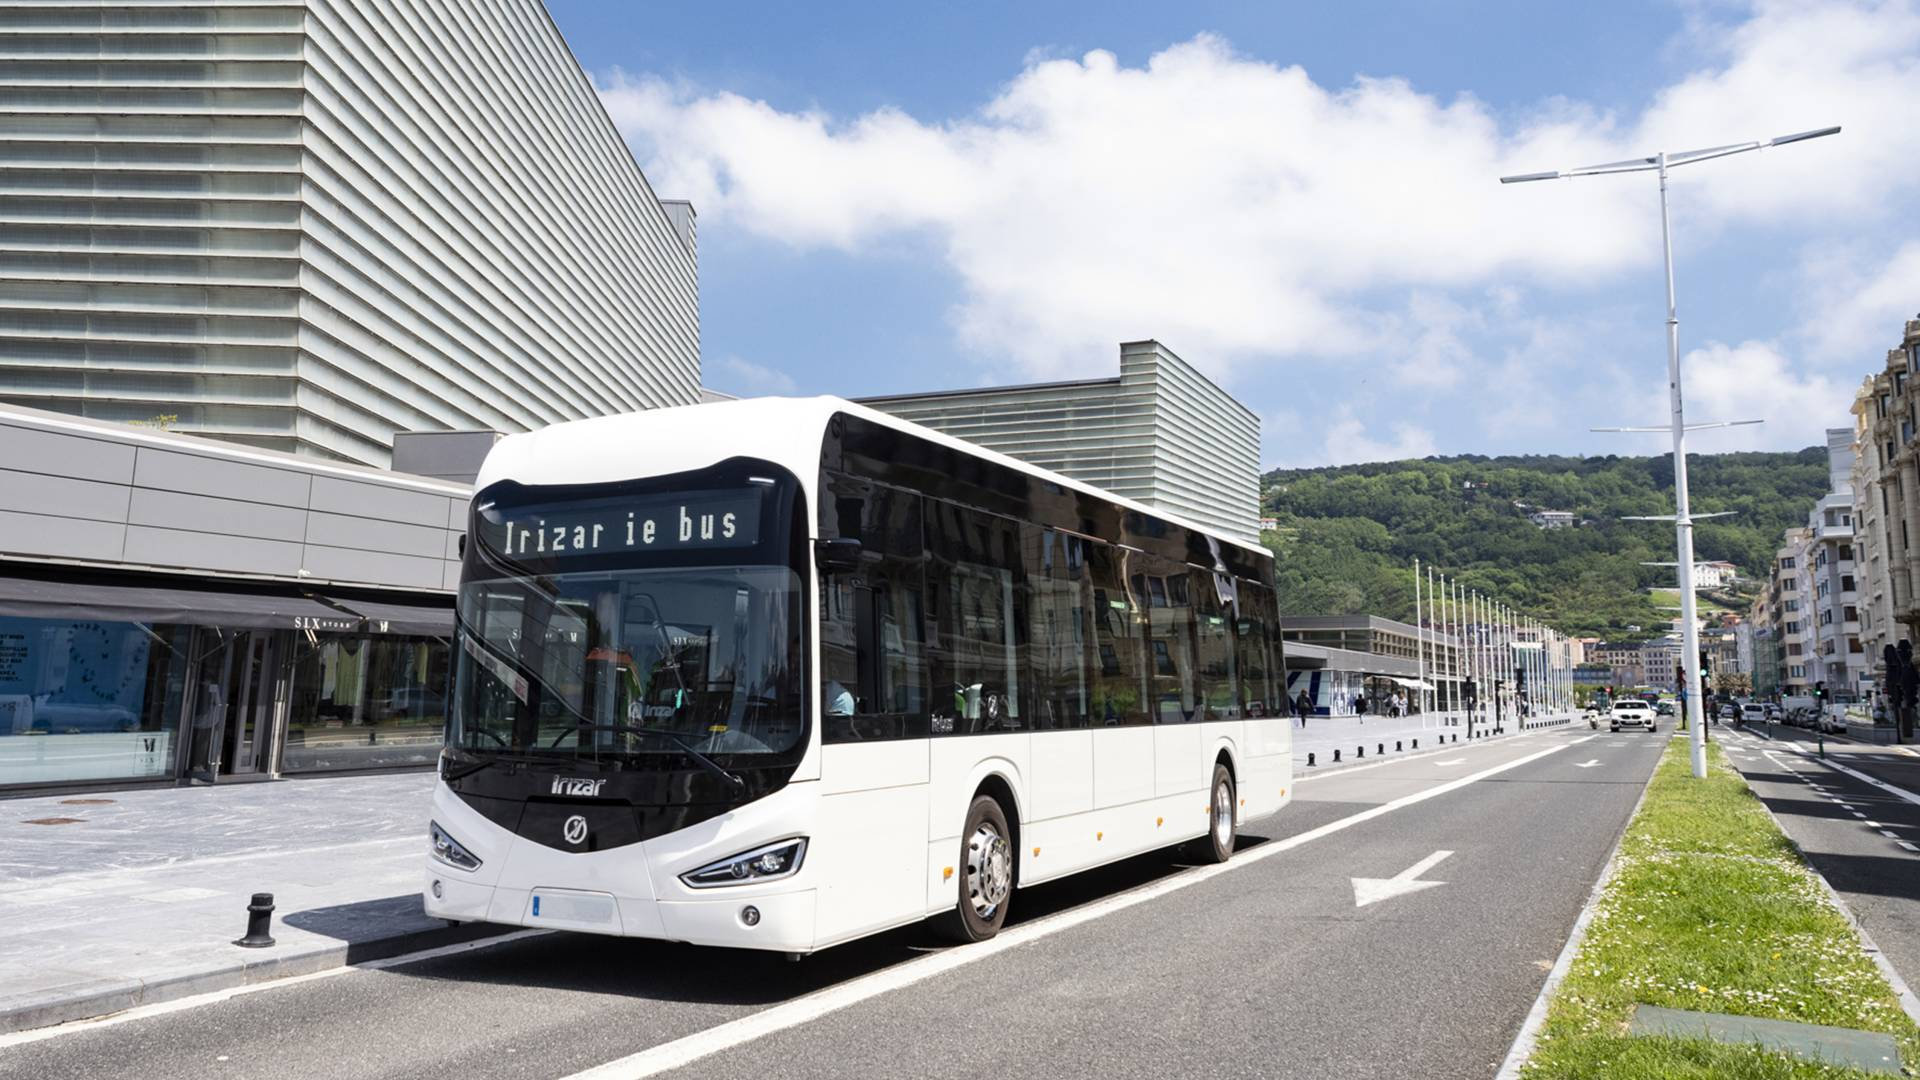 Irizar ie bus wins the Bus of the Year 2021 award